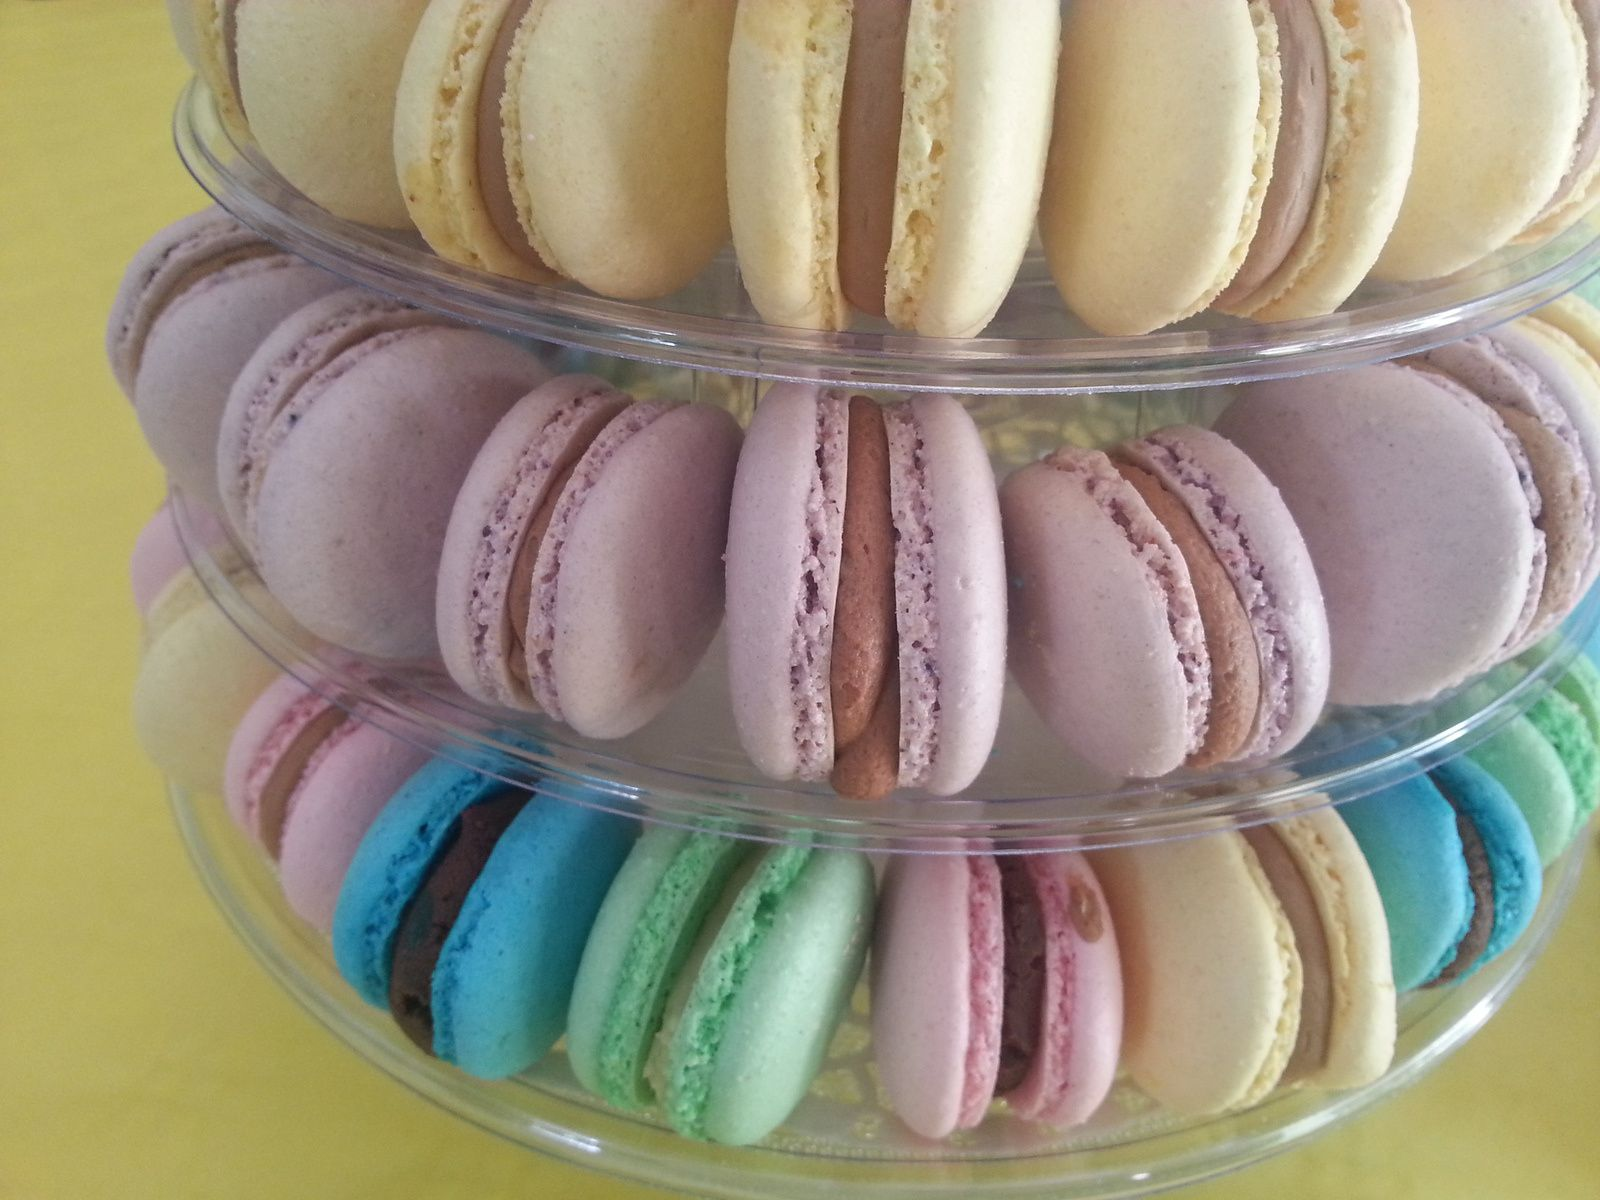 Pyramide de macarons multicolores - Angel's Kitchen